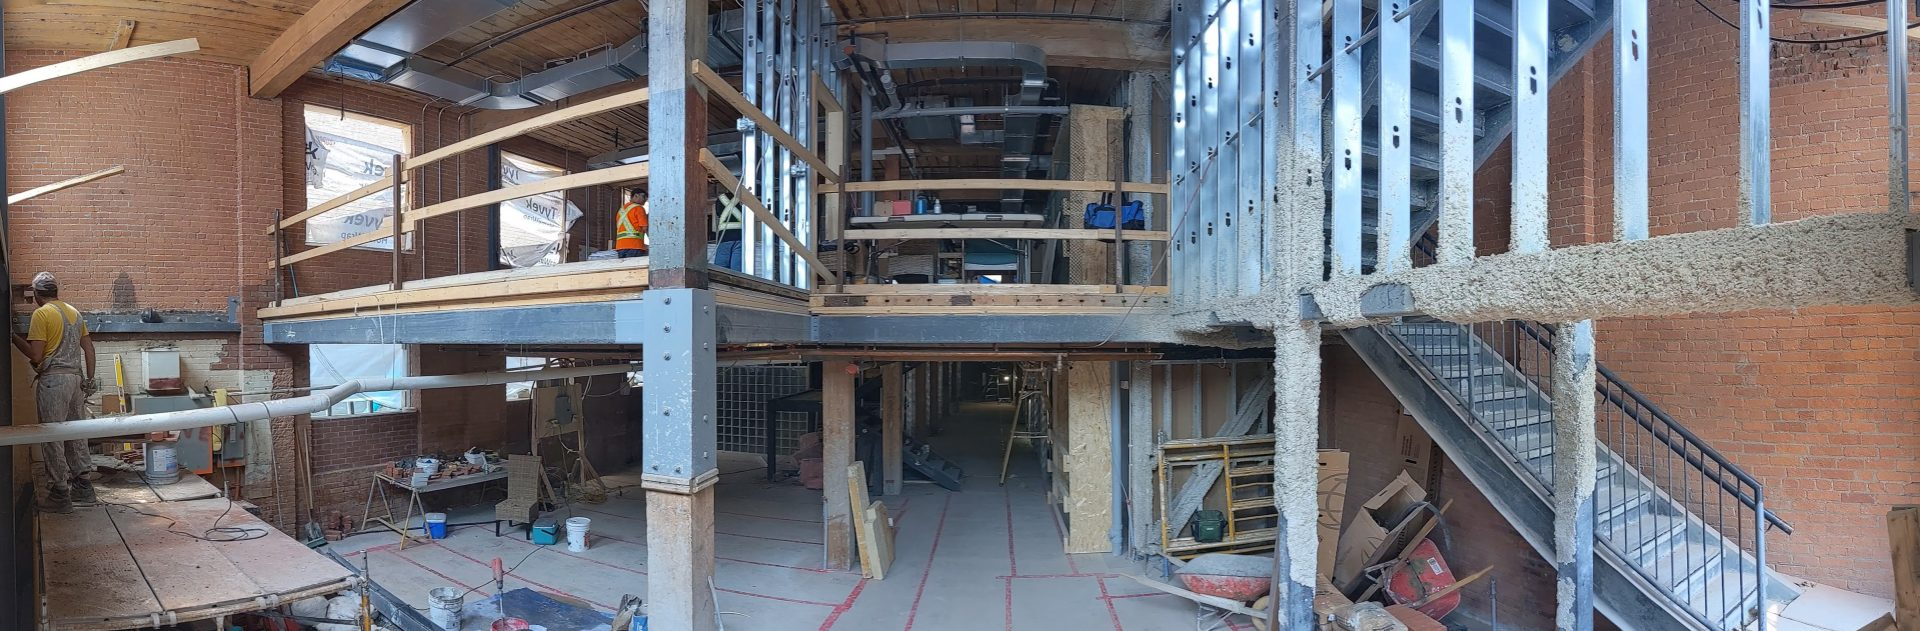 A panorama photo of the construction site at 54 Wosleley showing 2 floors with exposed beams and construction tools.